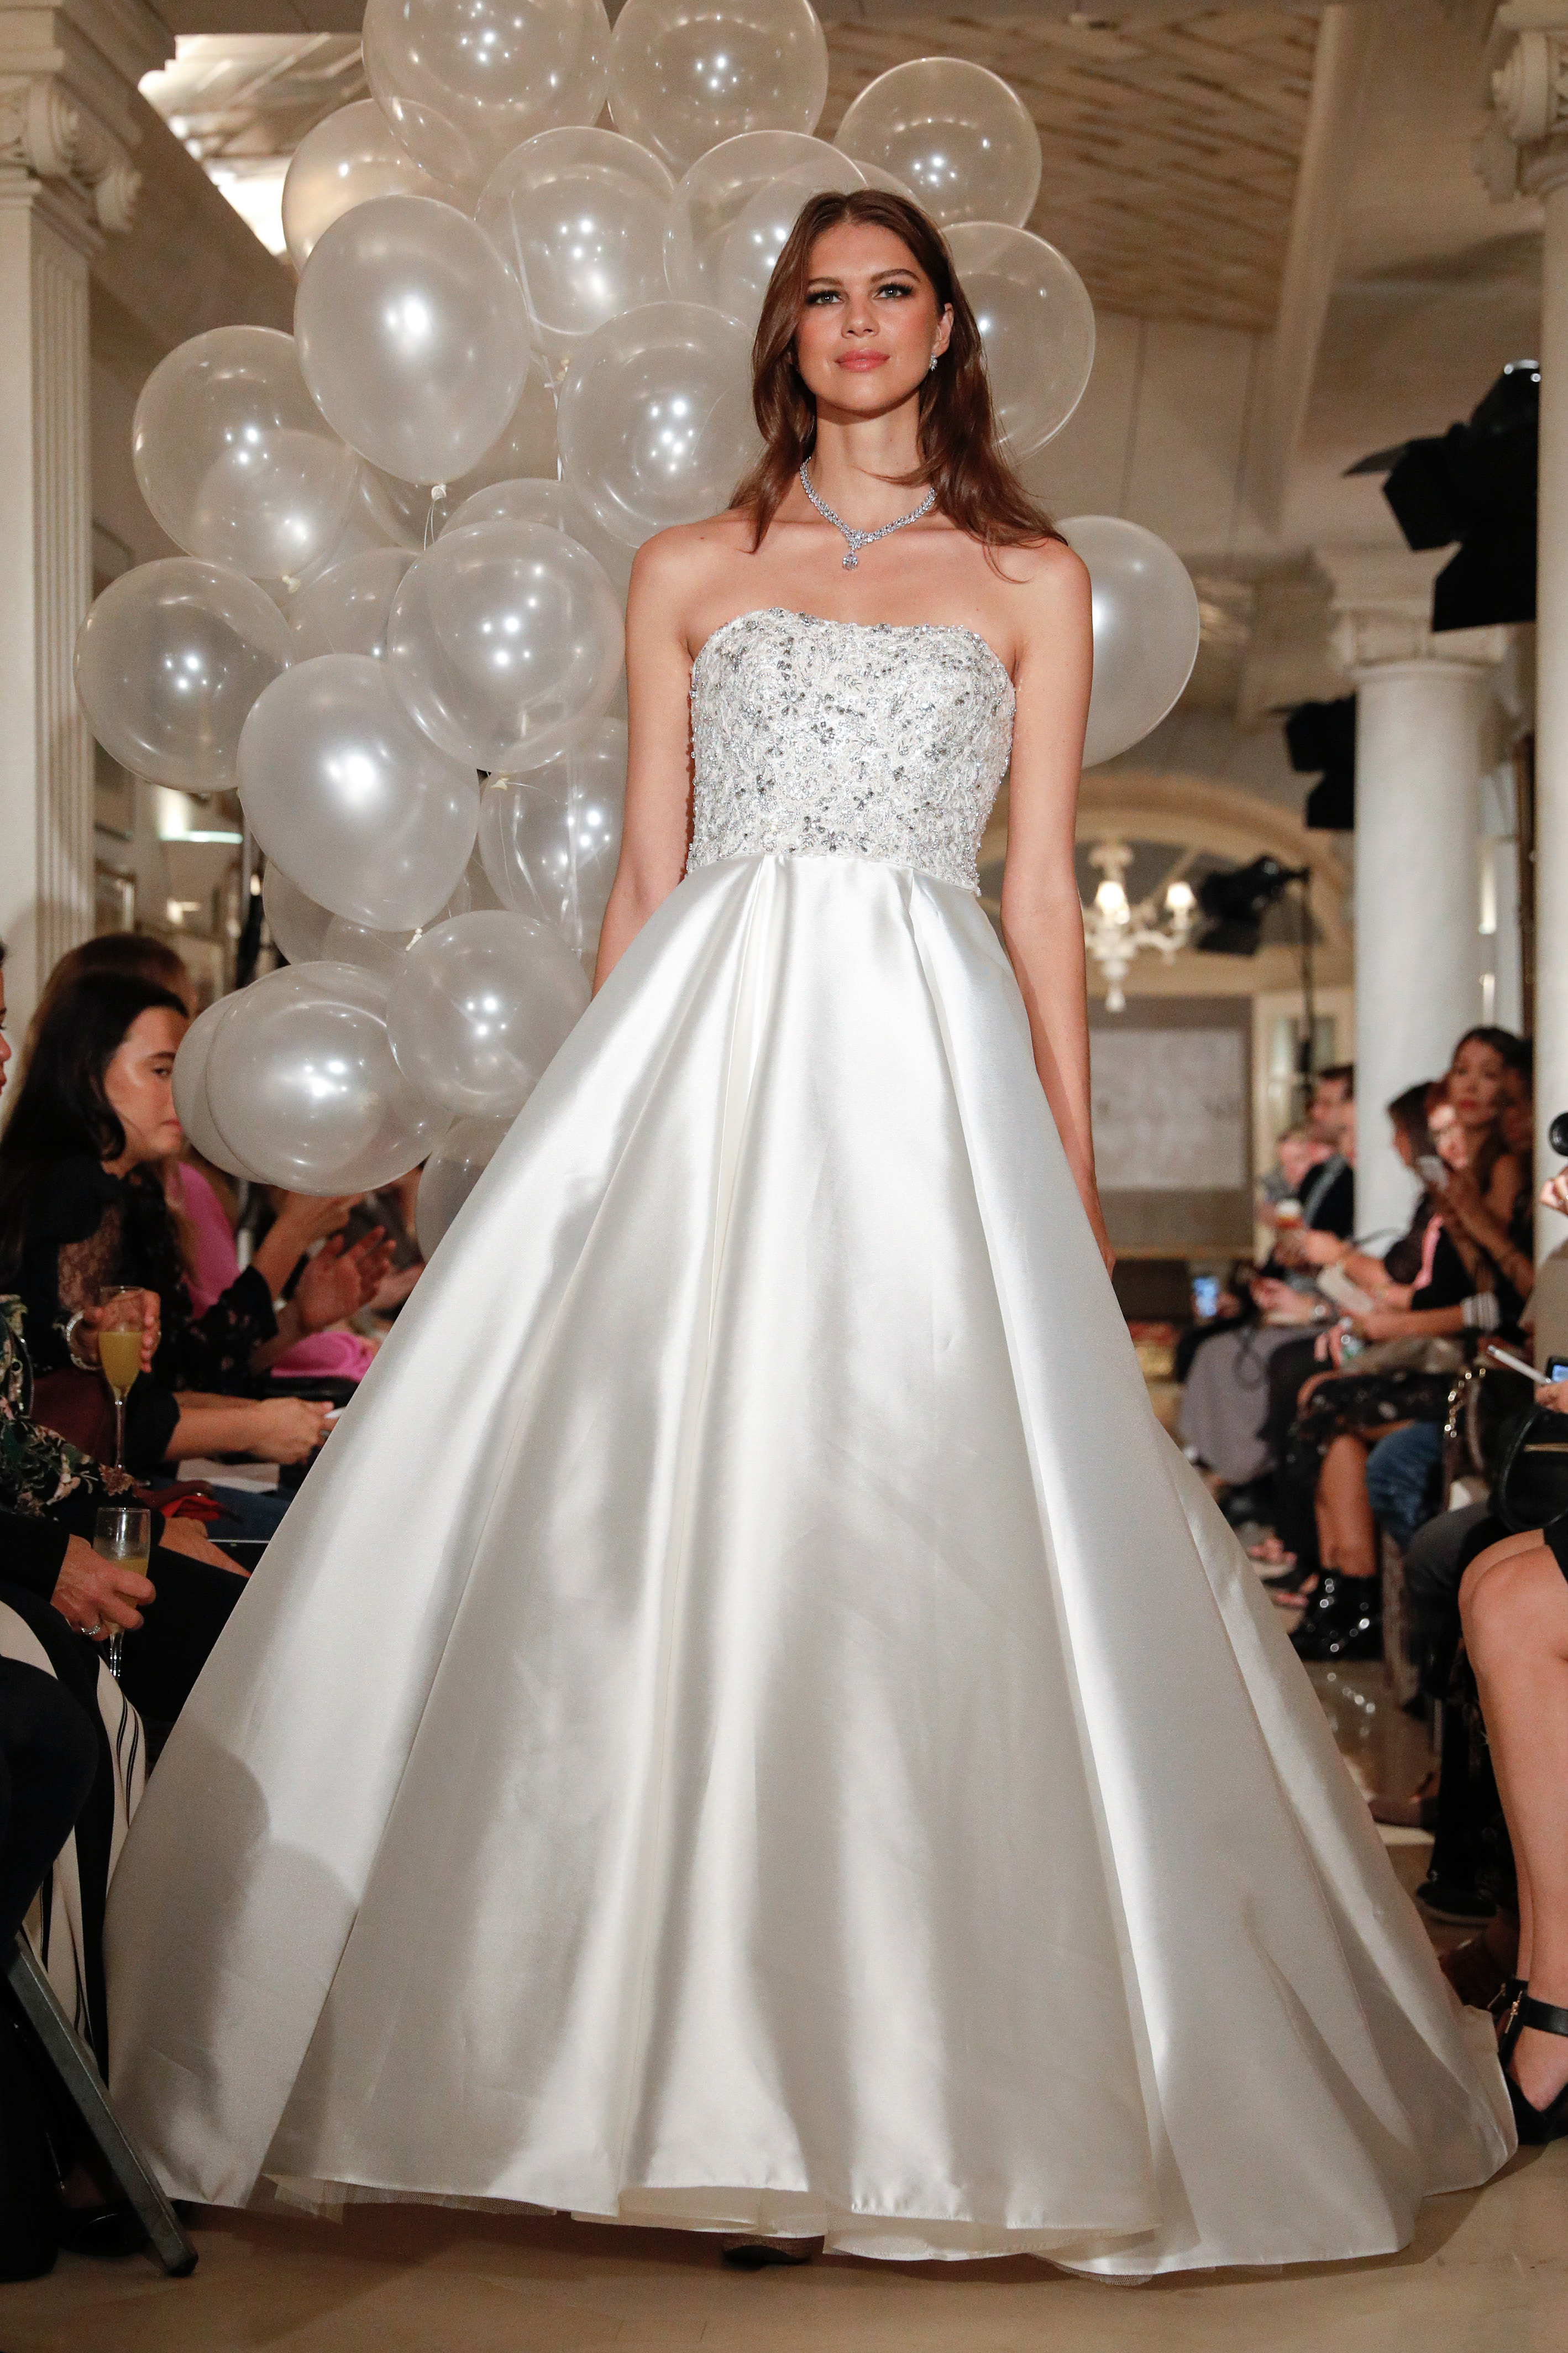 oleg cassini wedding dress fall 2018 strapless a-line embellished